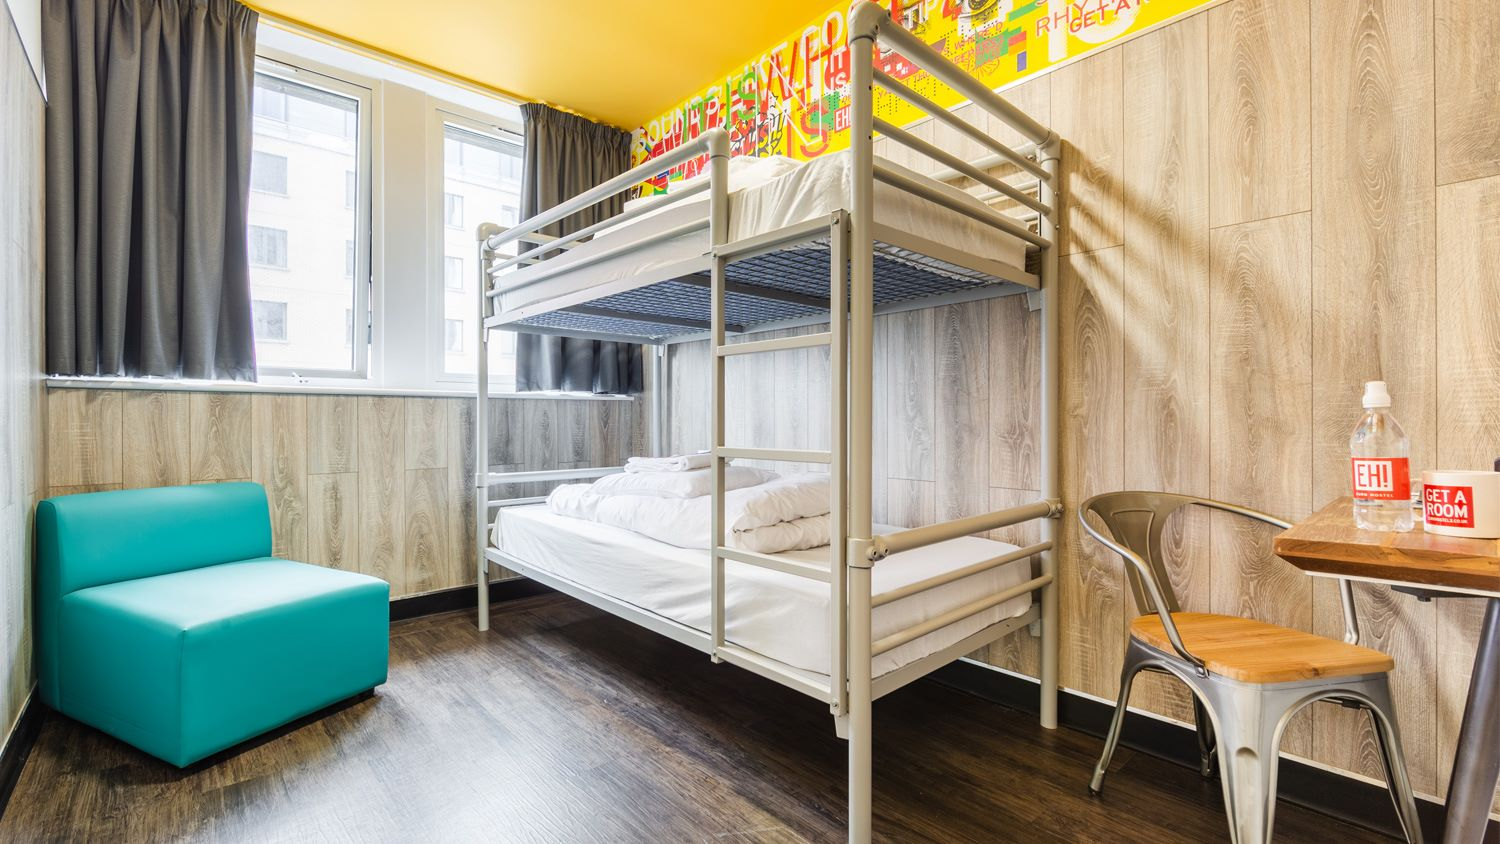 Single Bed in a Private Room at Euro Hostel Glasgow